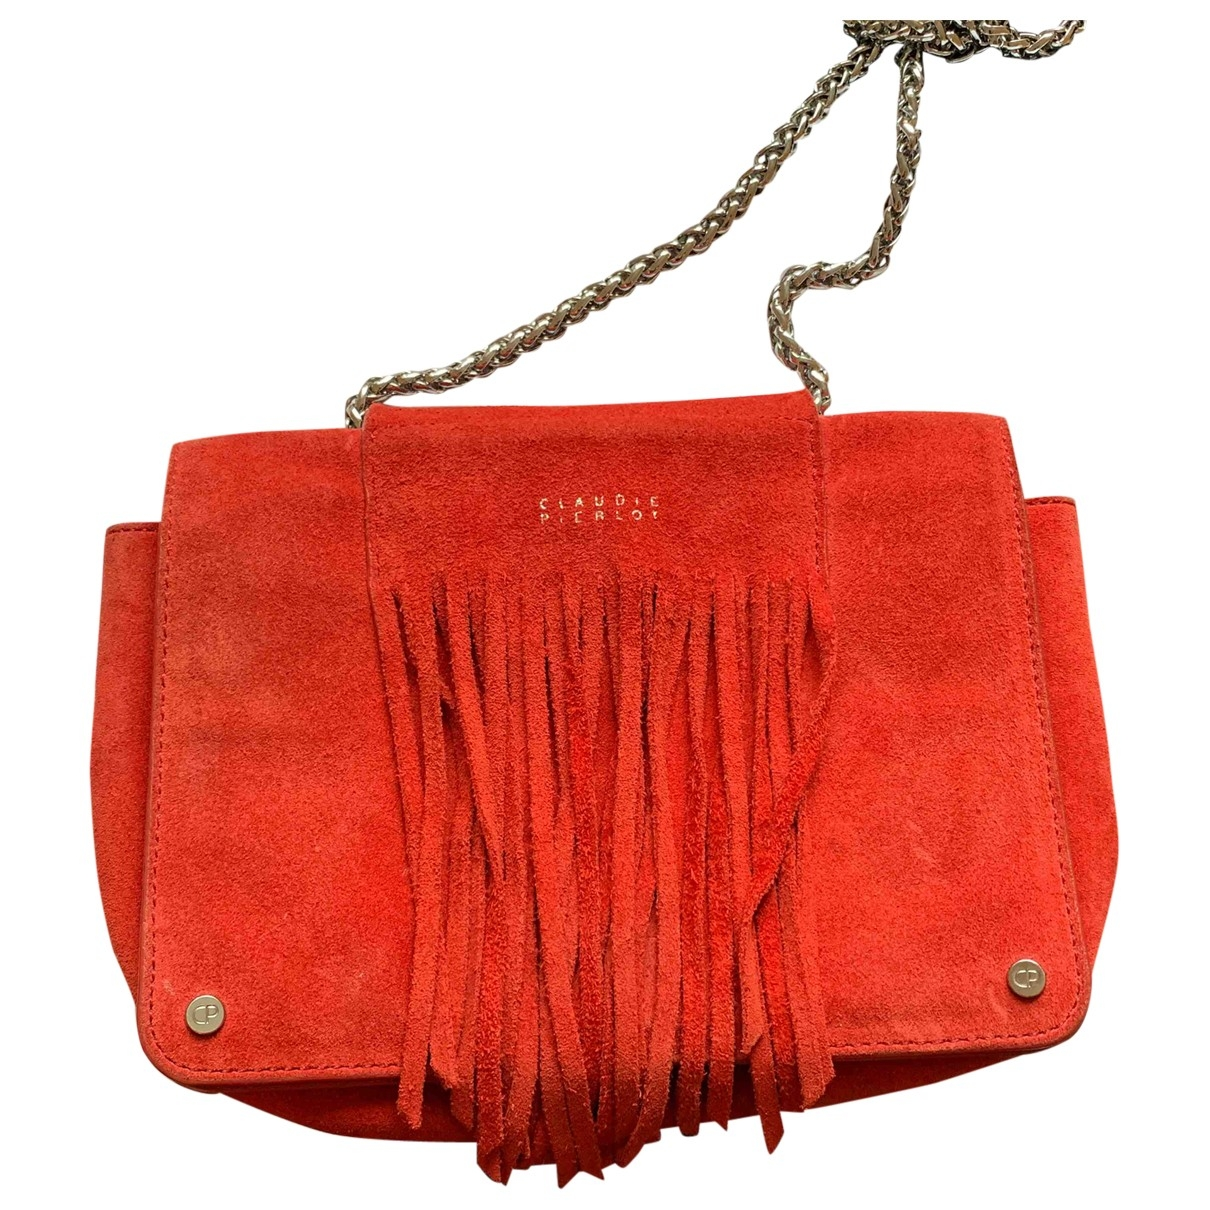 Claudie Pierlot \N Red Suede handbag for Women \N